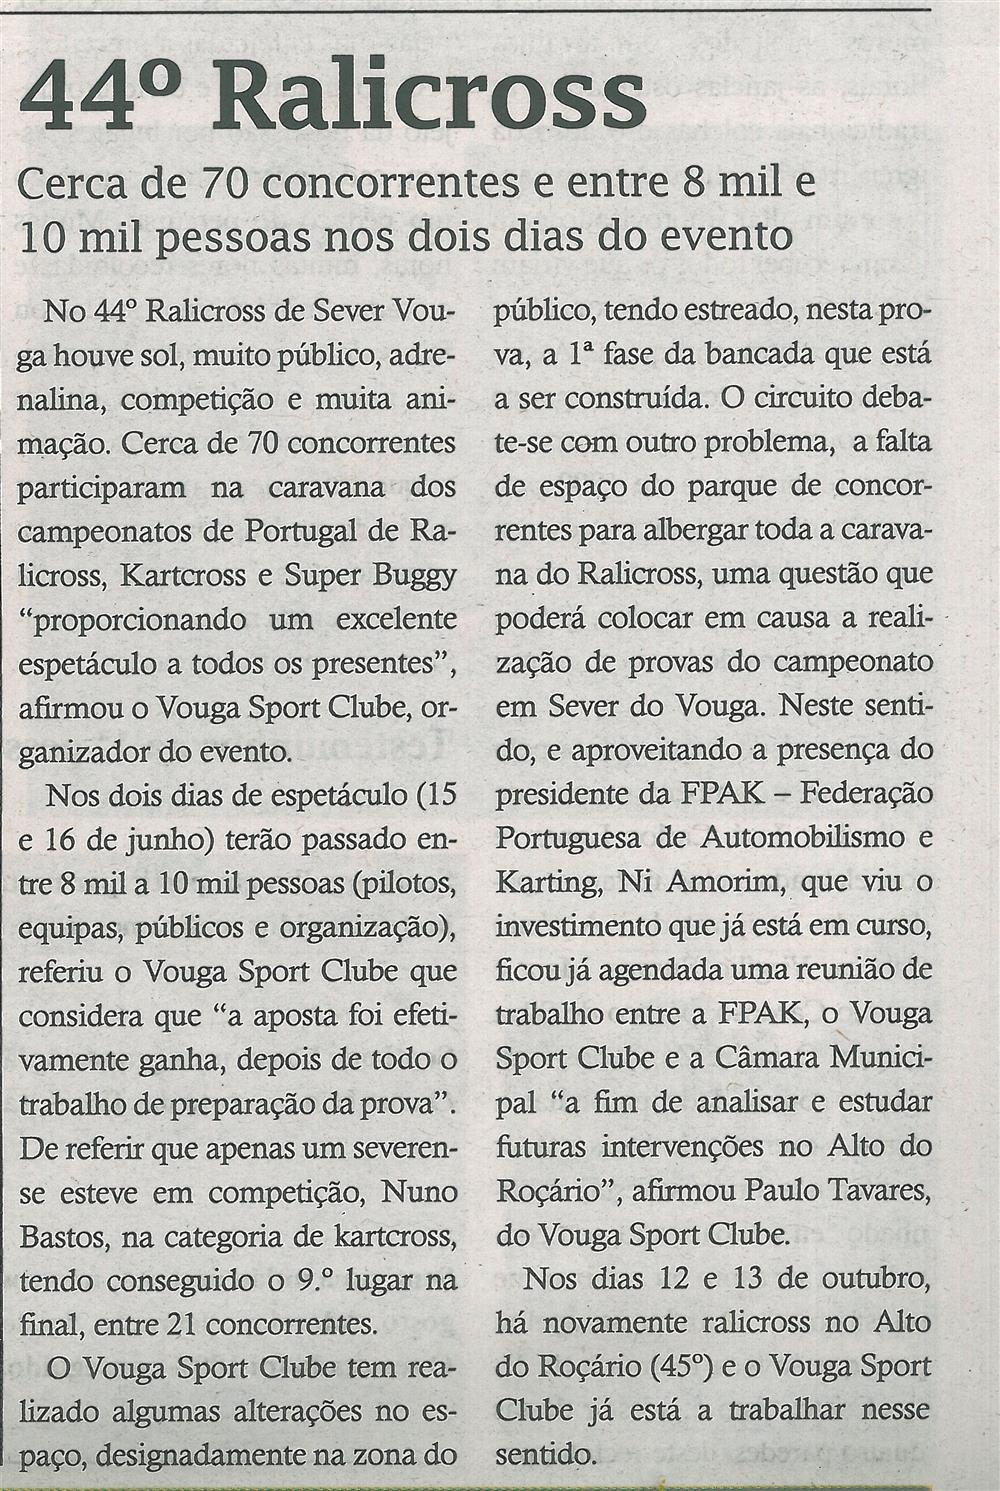 TV-jul.'19-p.9-44.º Ralicross.jpg